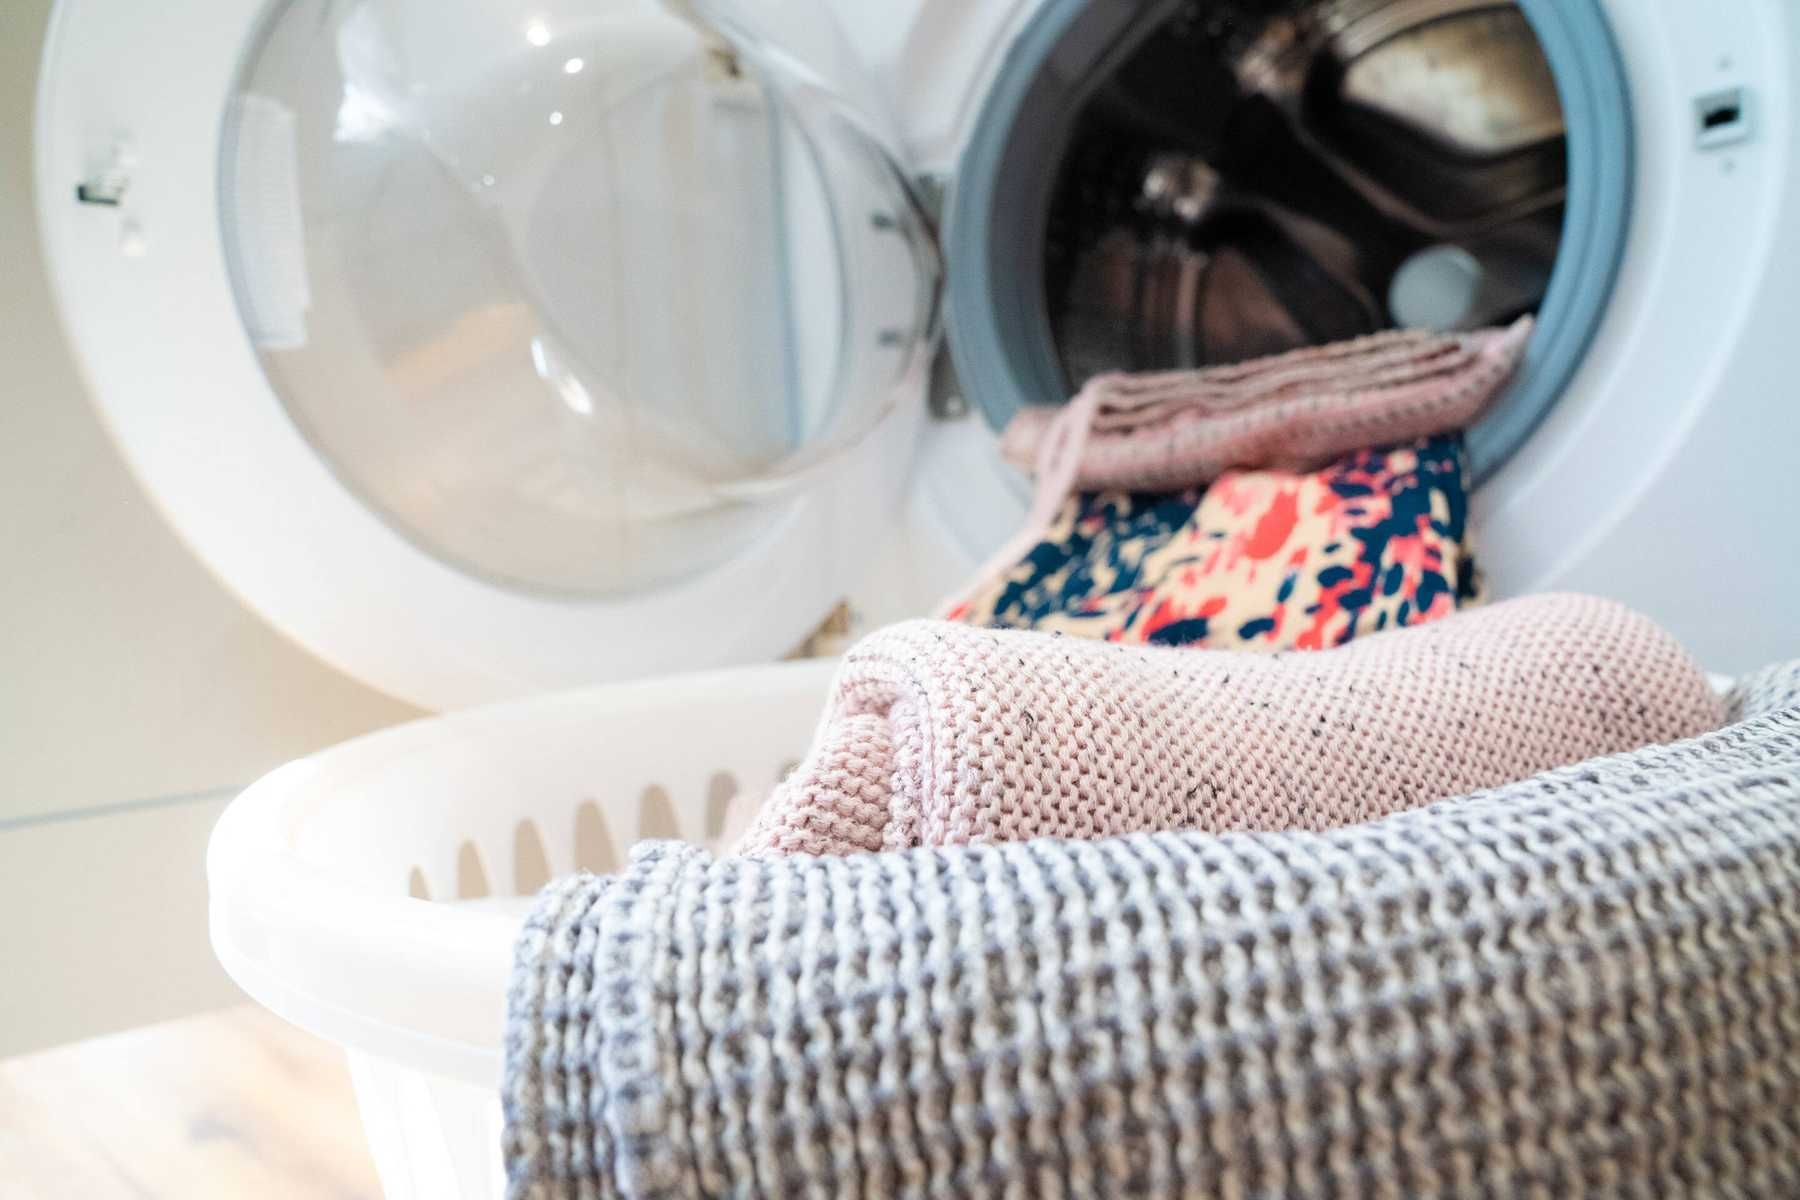 How To Get Lint Off Clothes In The Dryer